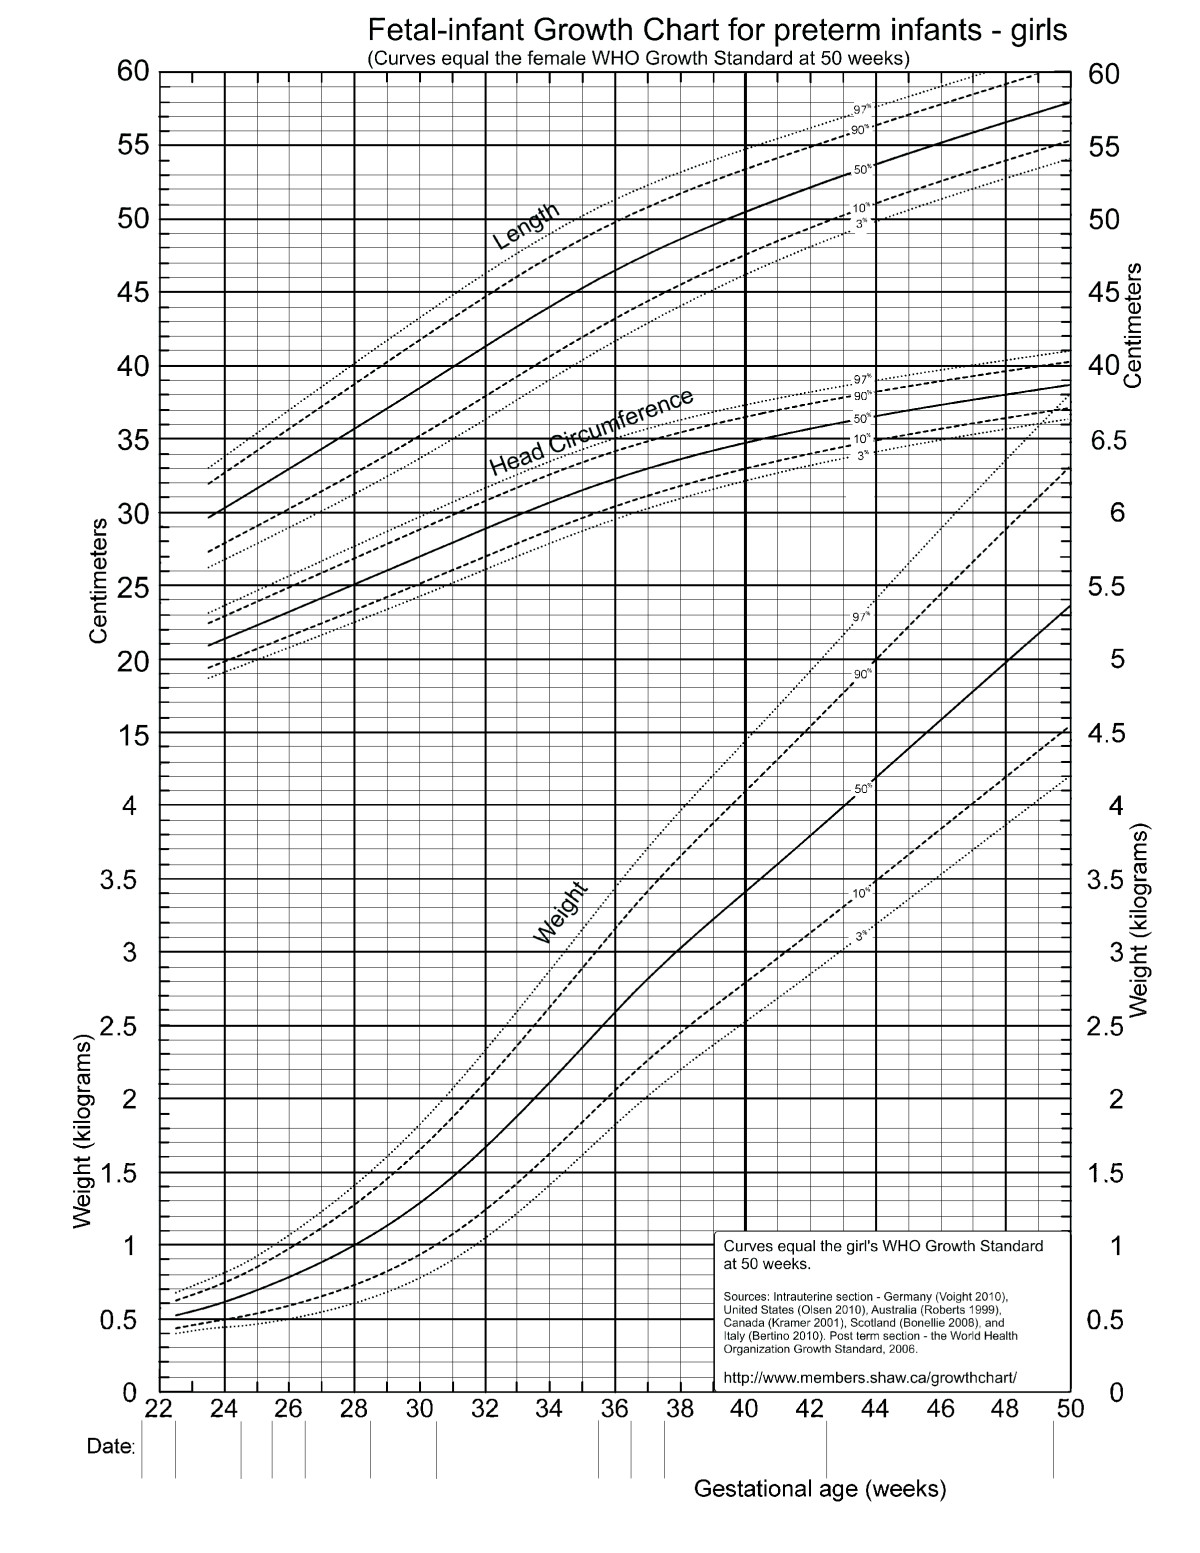 Fenton fetal infant growth chart 2013 pedchrome magazine fenton fetal infant growth chart 2013 nvjuhfo Image collections